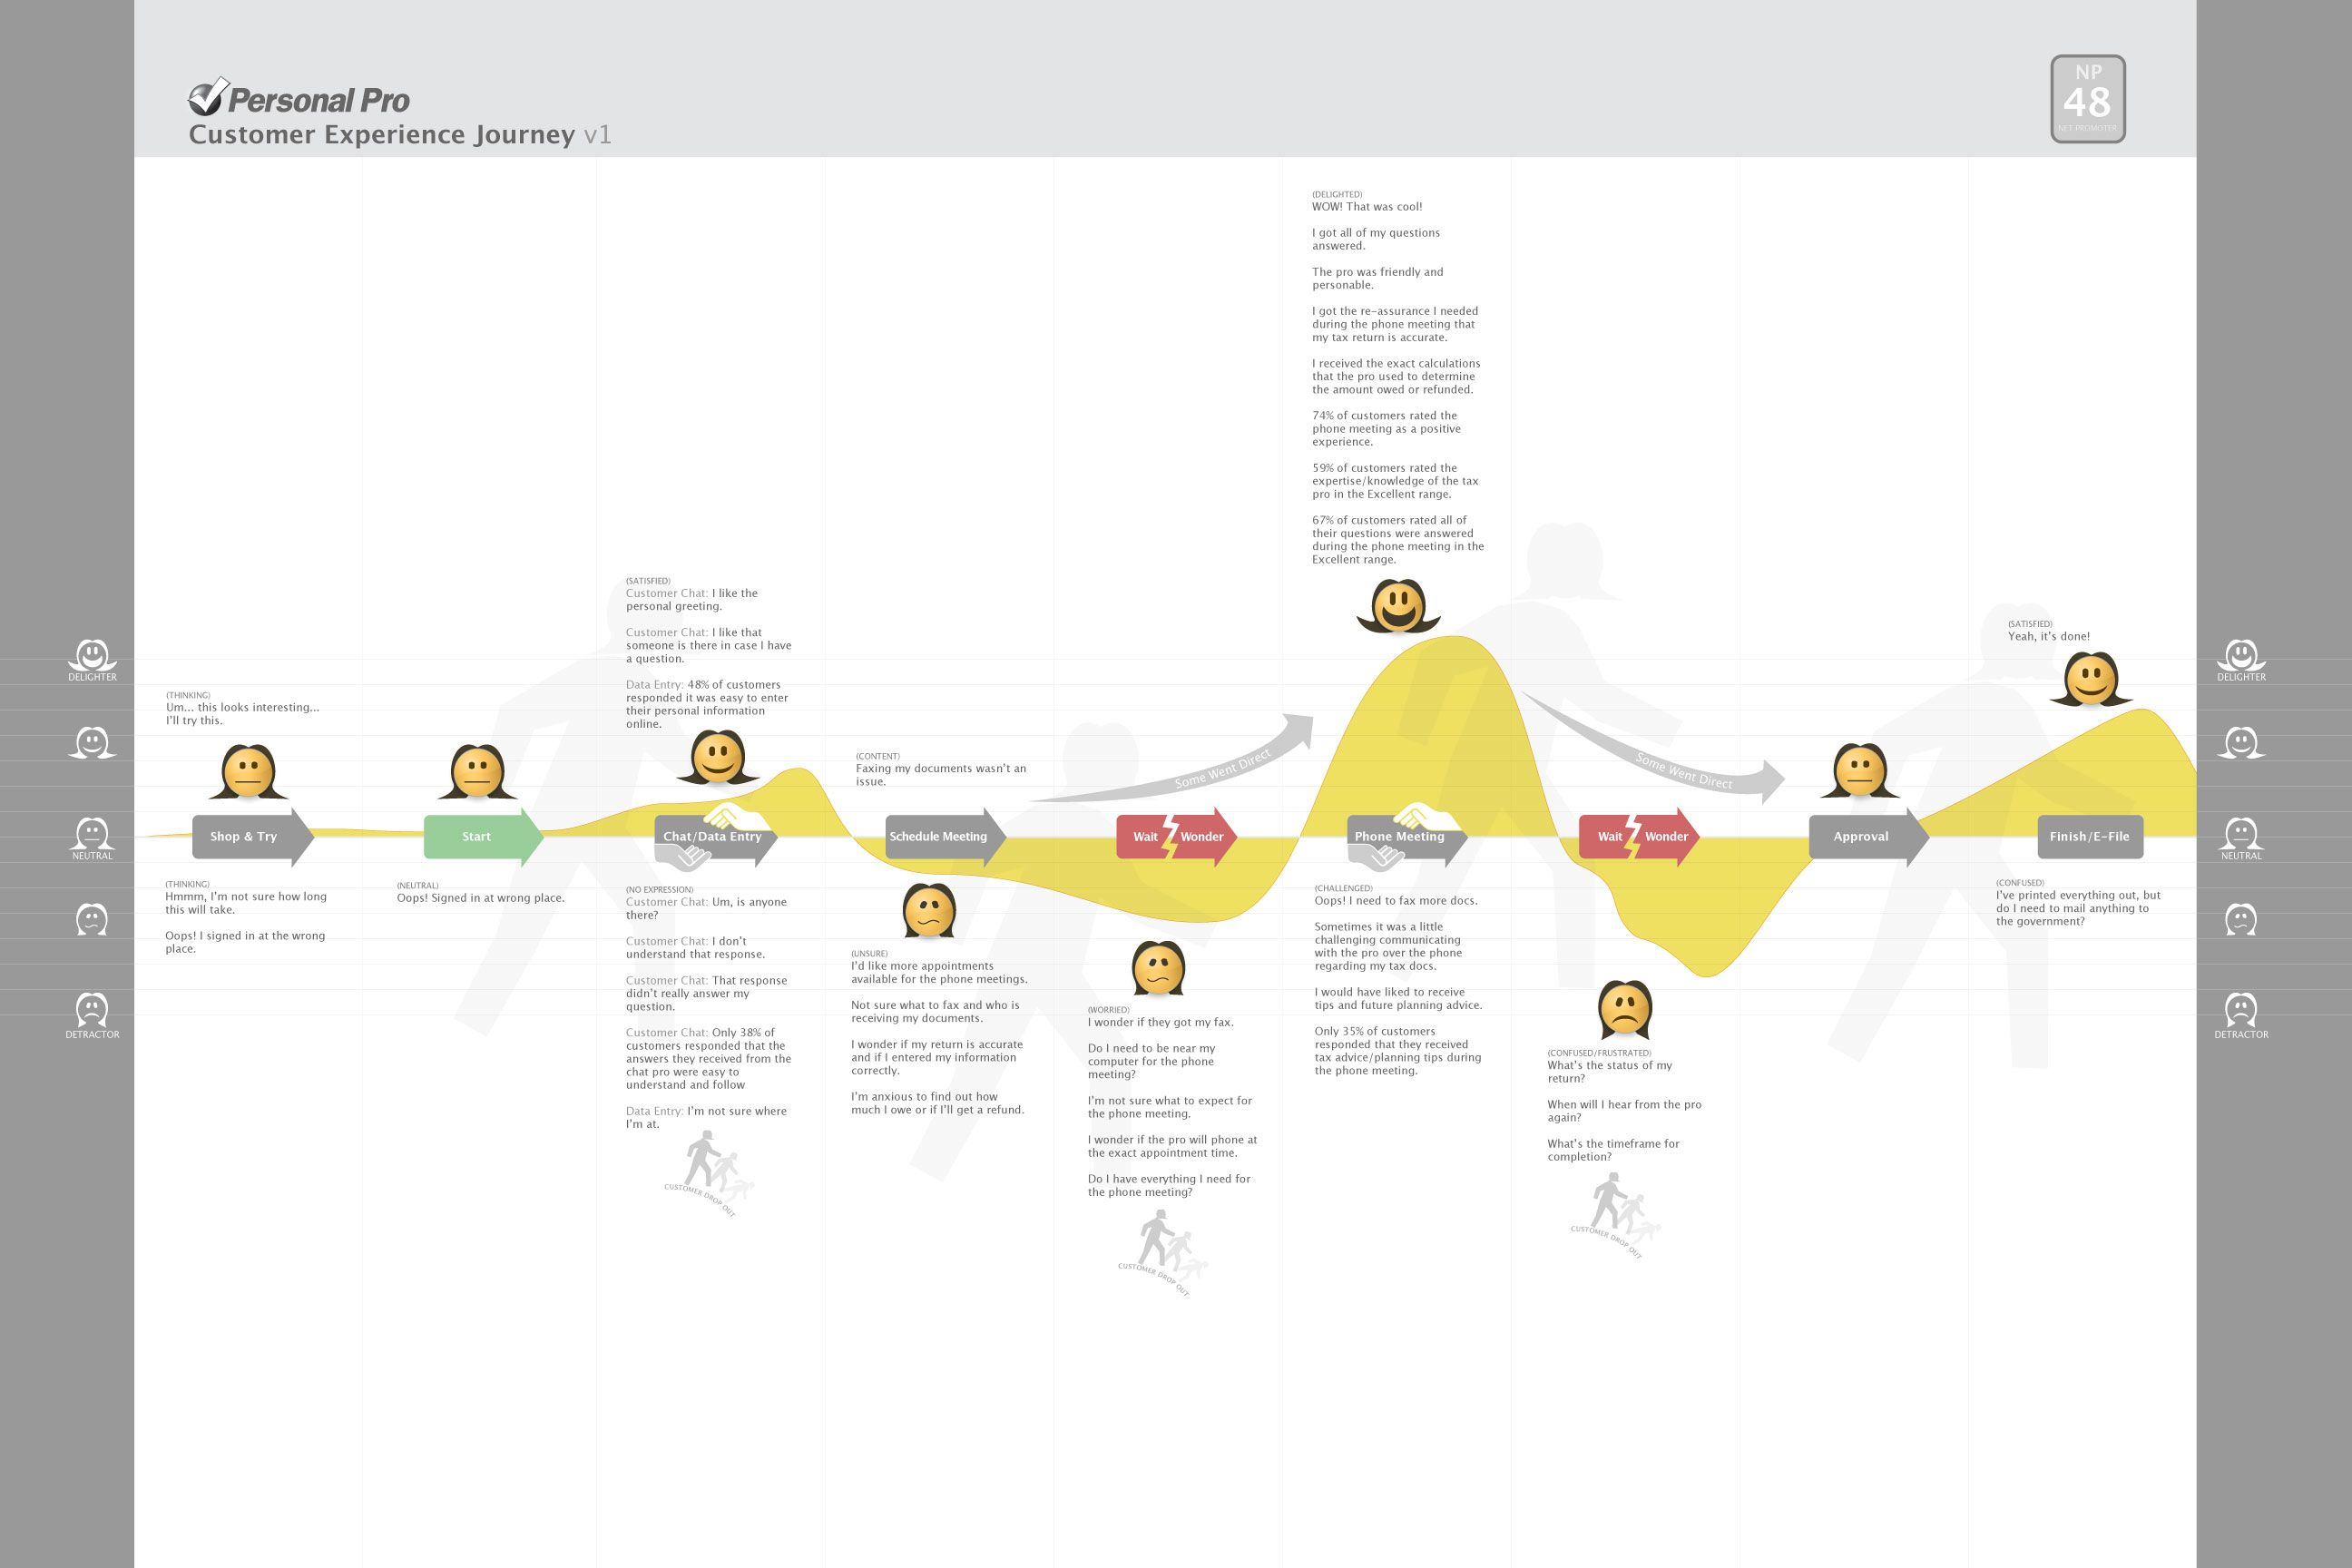 Customer Experience Journey Map.